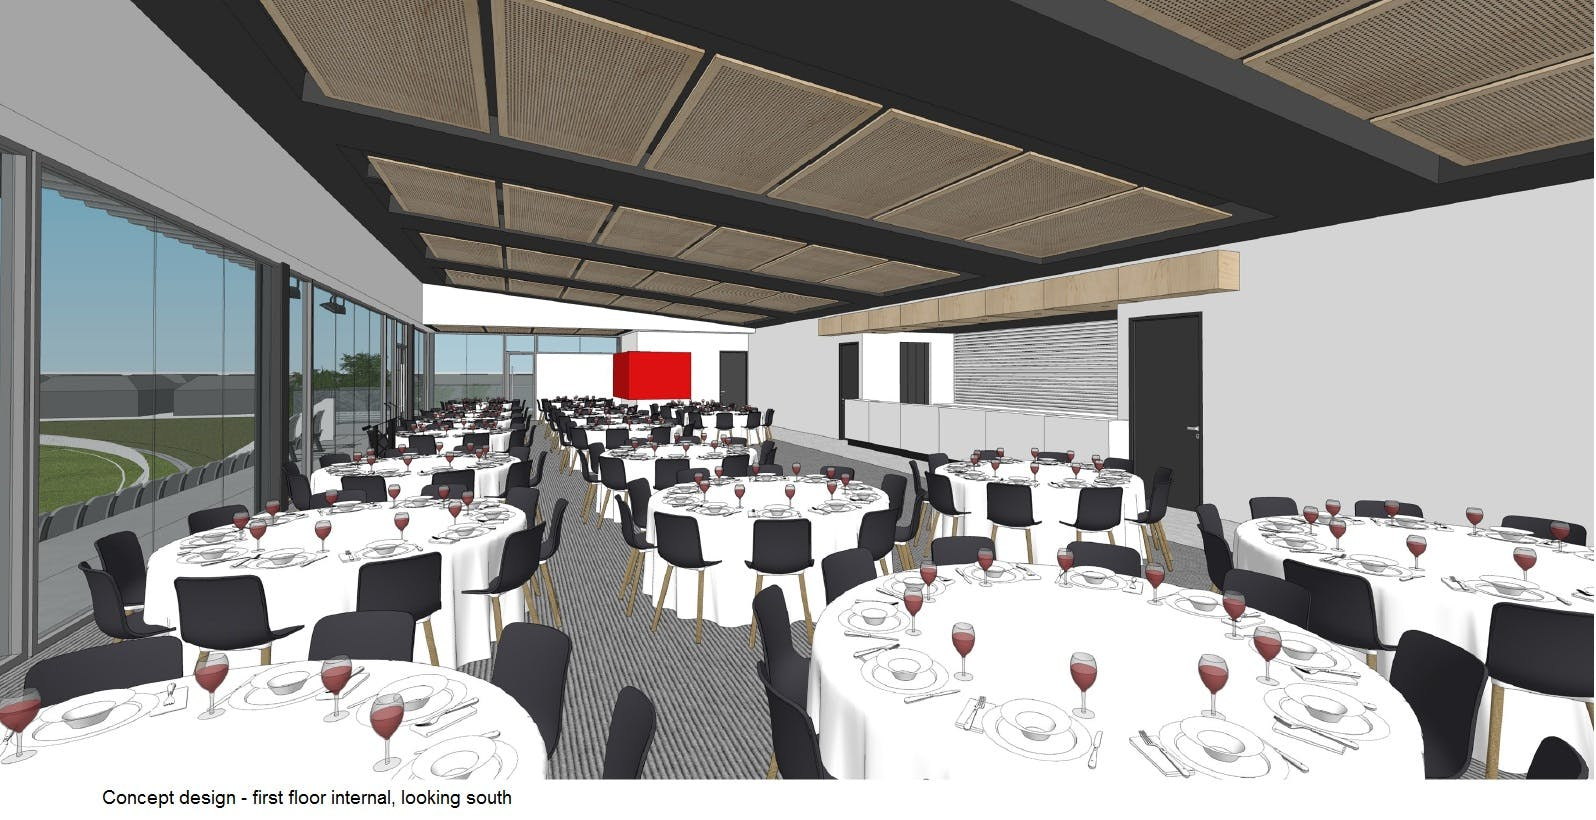 Concept Image of Goodwood Oval Grandstand first floor internal south